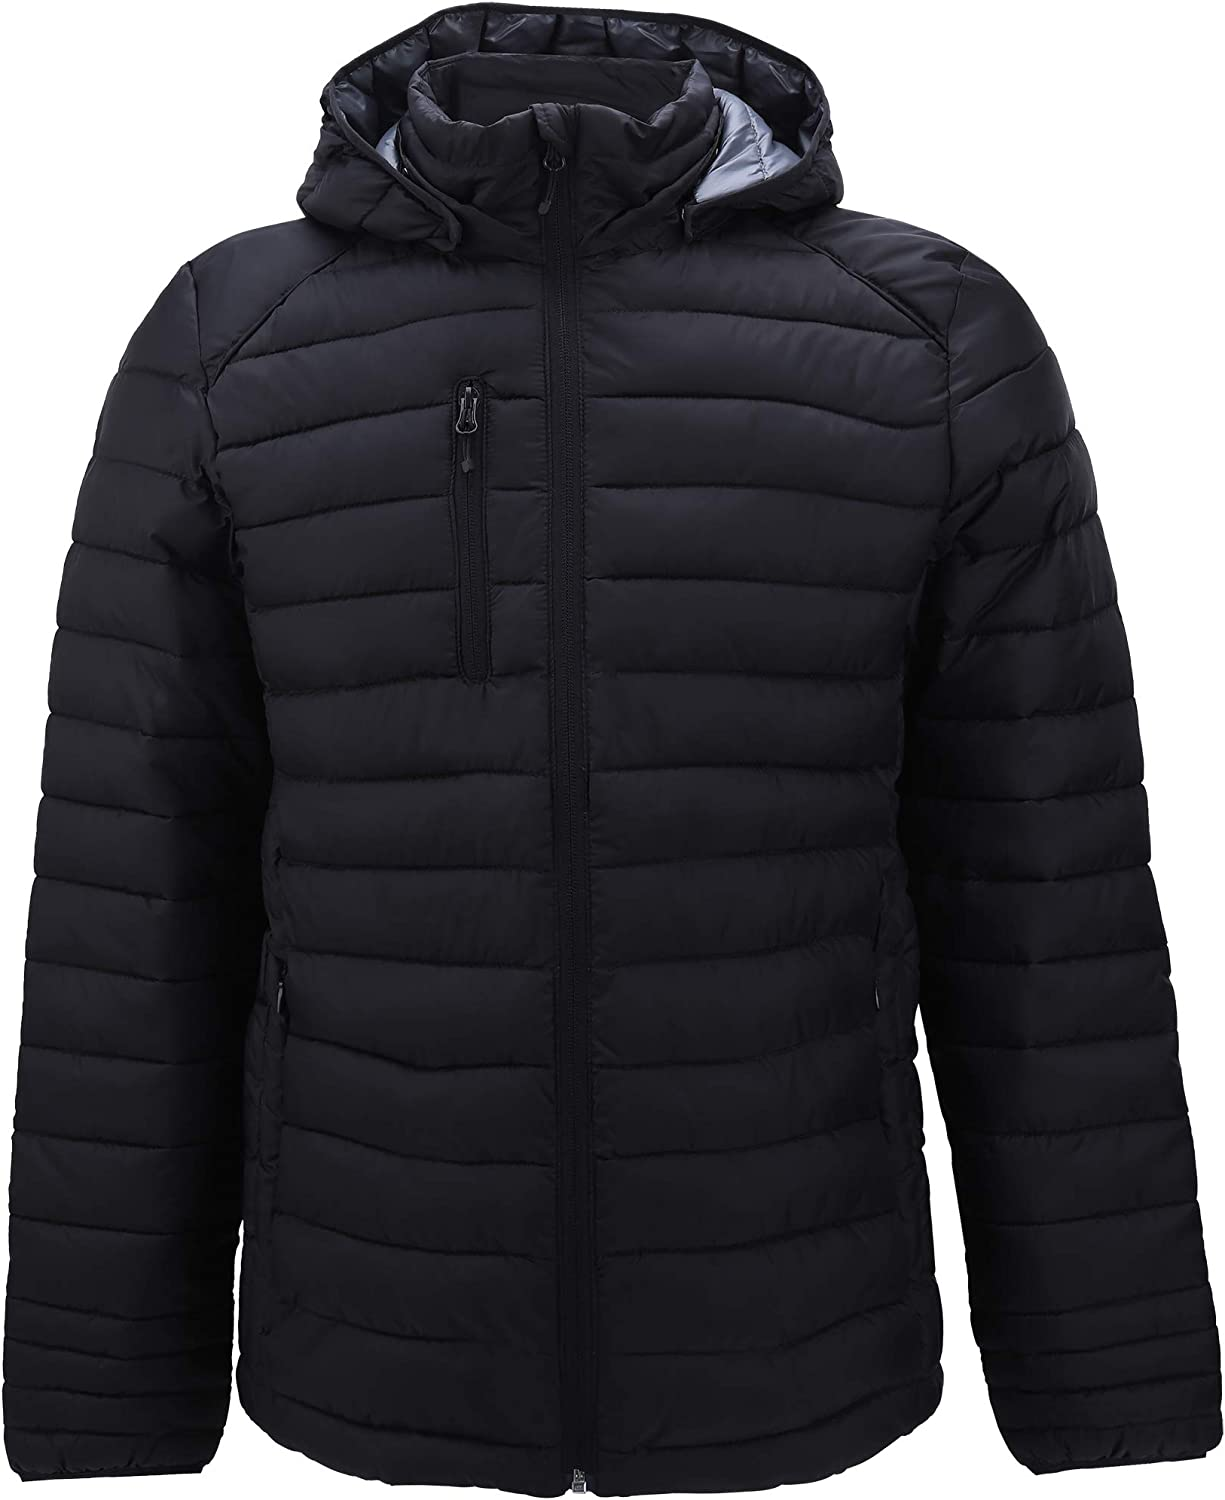 Mens Down Alternative Jacket Quilted Lightweight Packable Padding Coat with Detachable Hood: Clothing